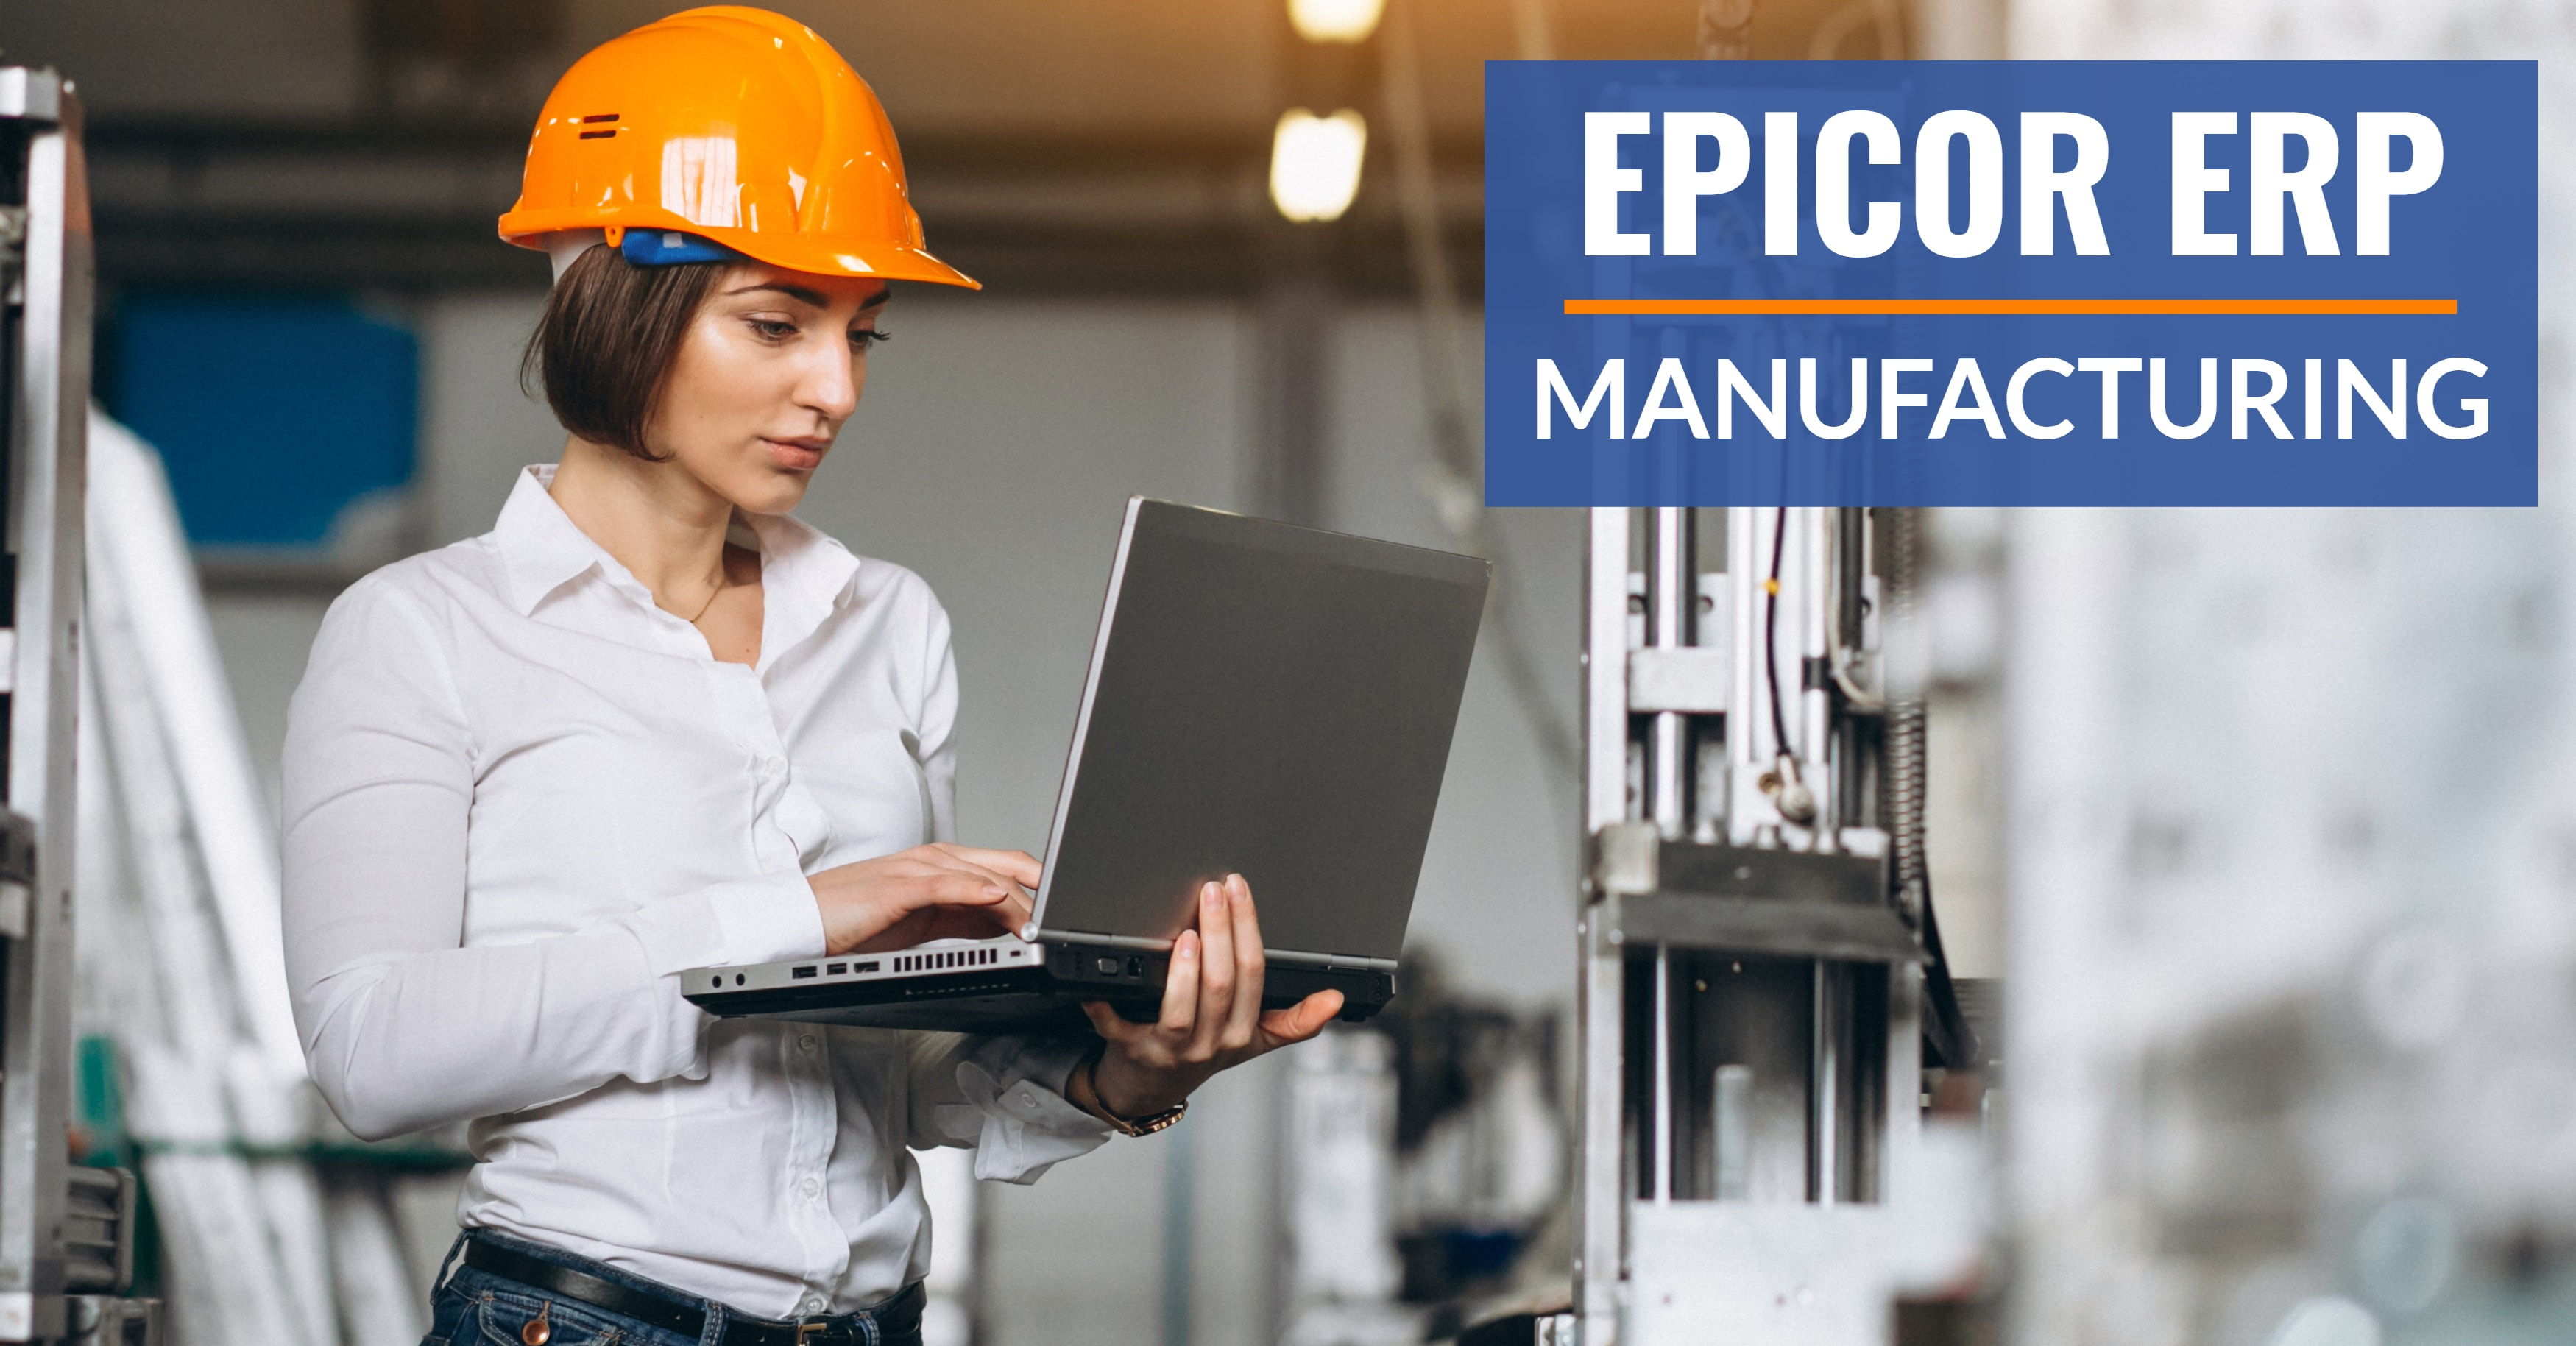 How Epicor ERP Supports Manufacturing Priorities